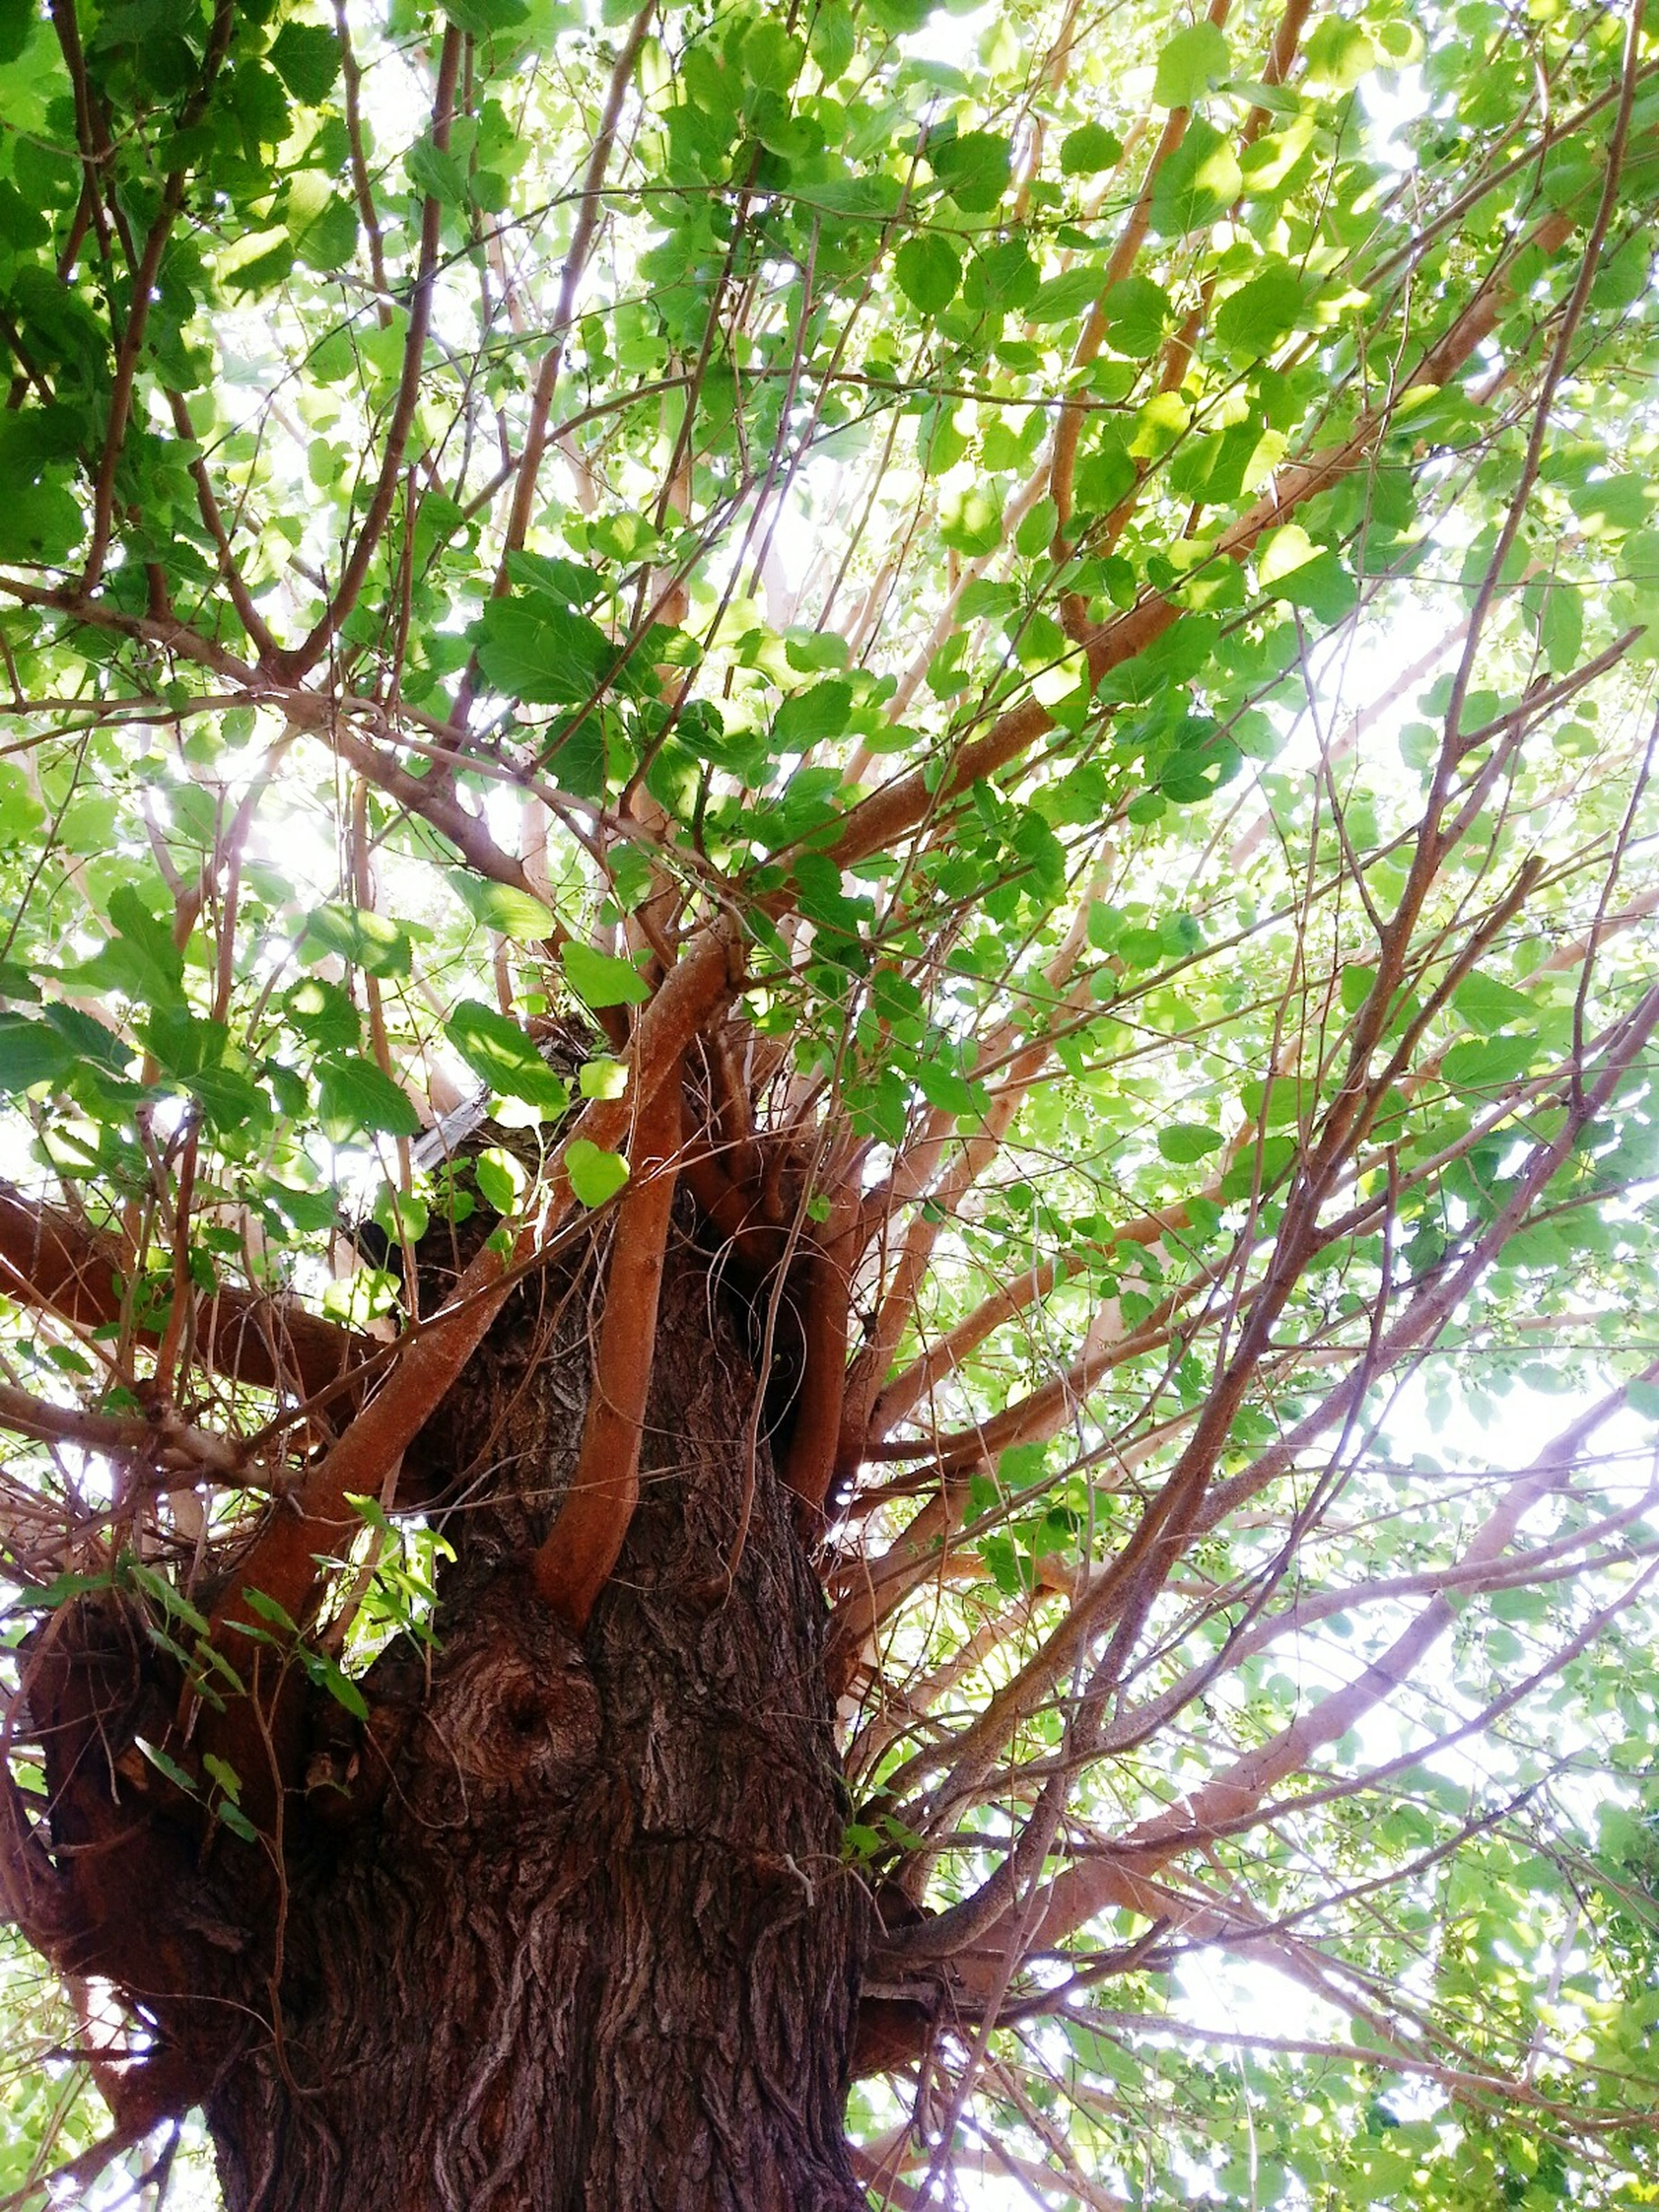 tree, low angle view, branch, growth, tree trunk, green color, nature, tranquility, forest, leaf, beauty in nature, day, outdoors, sky, no people, backgrounds, green, full frame, lush foliage, scenics